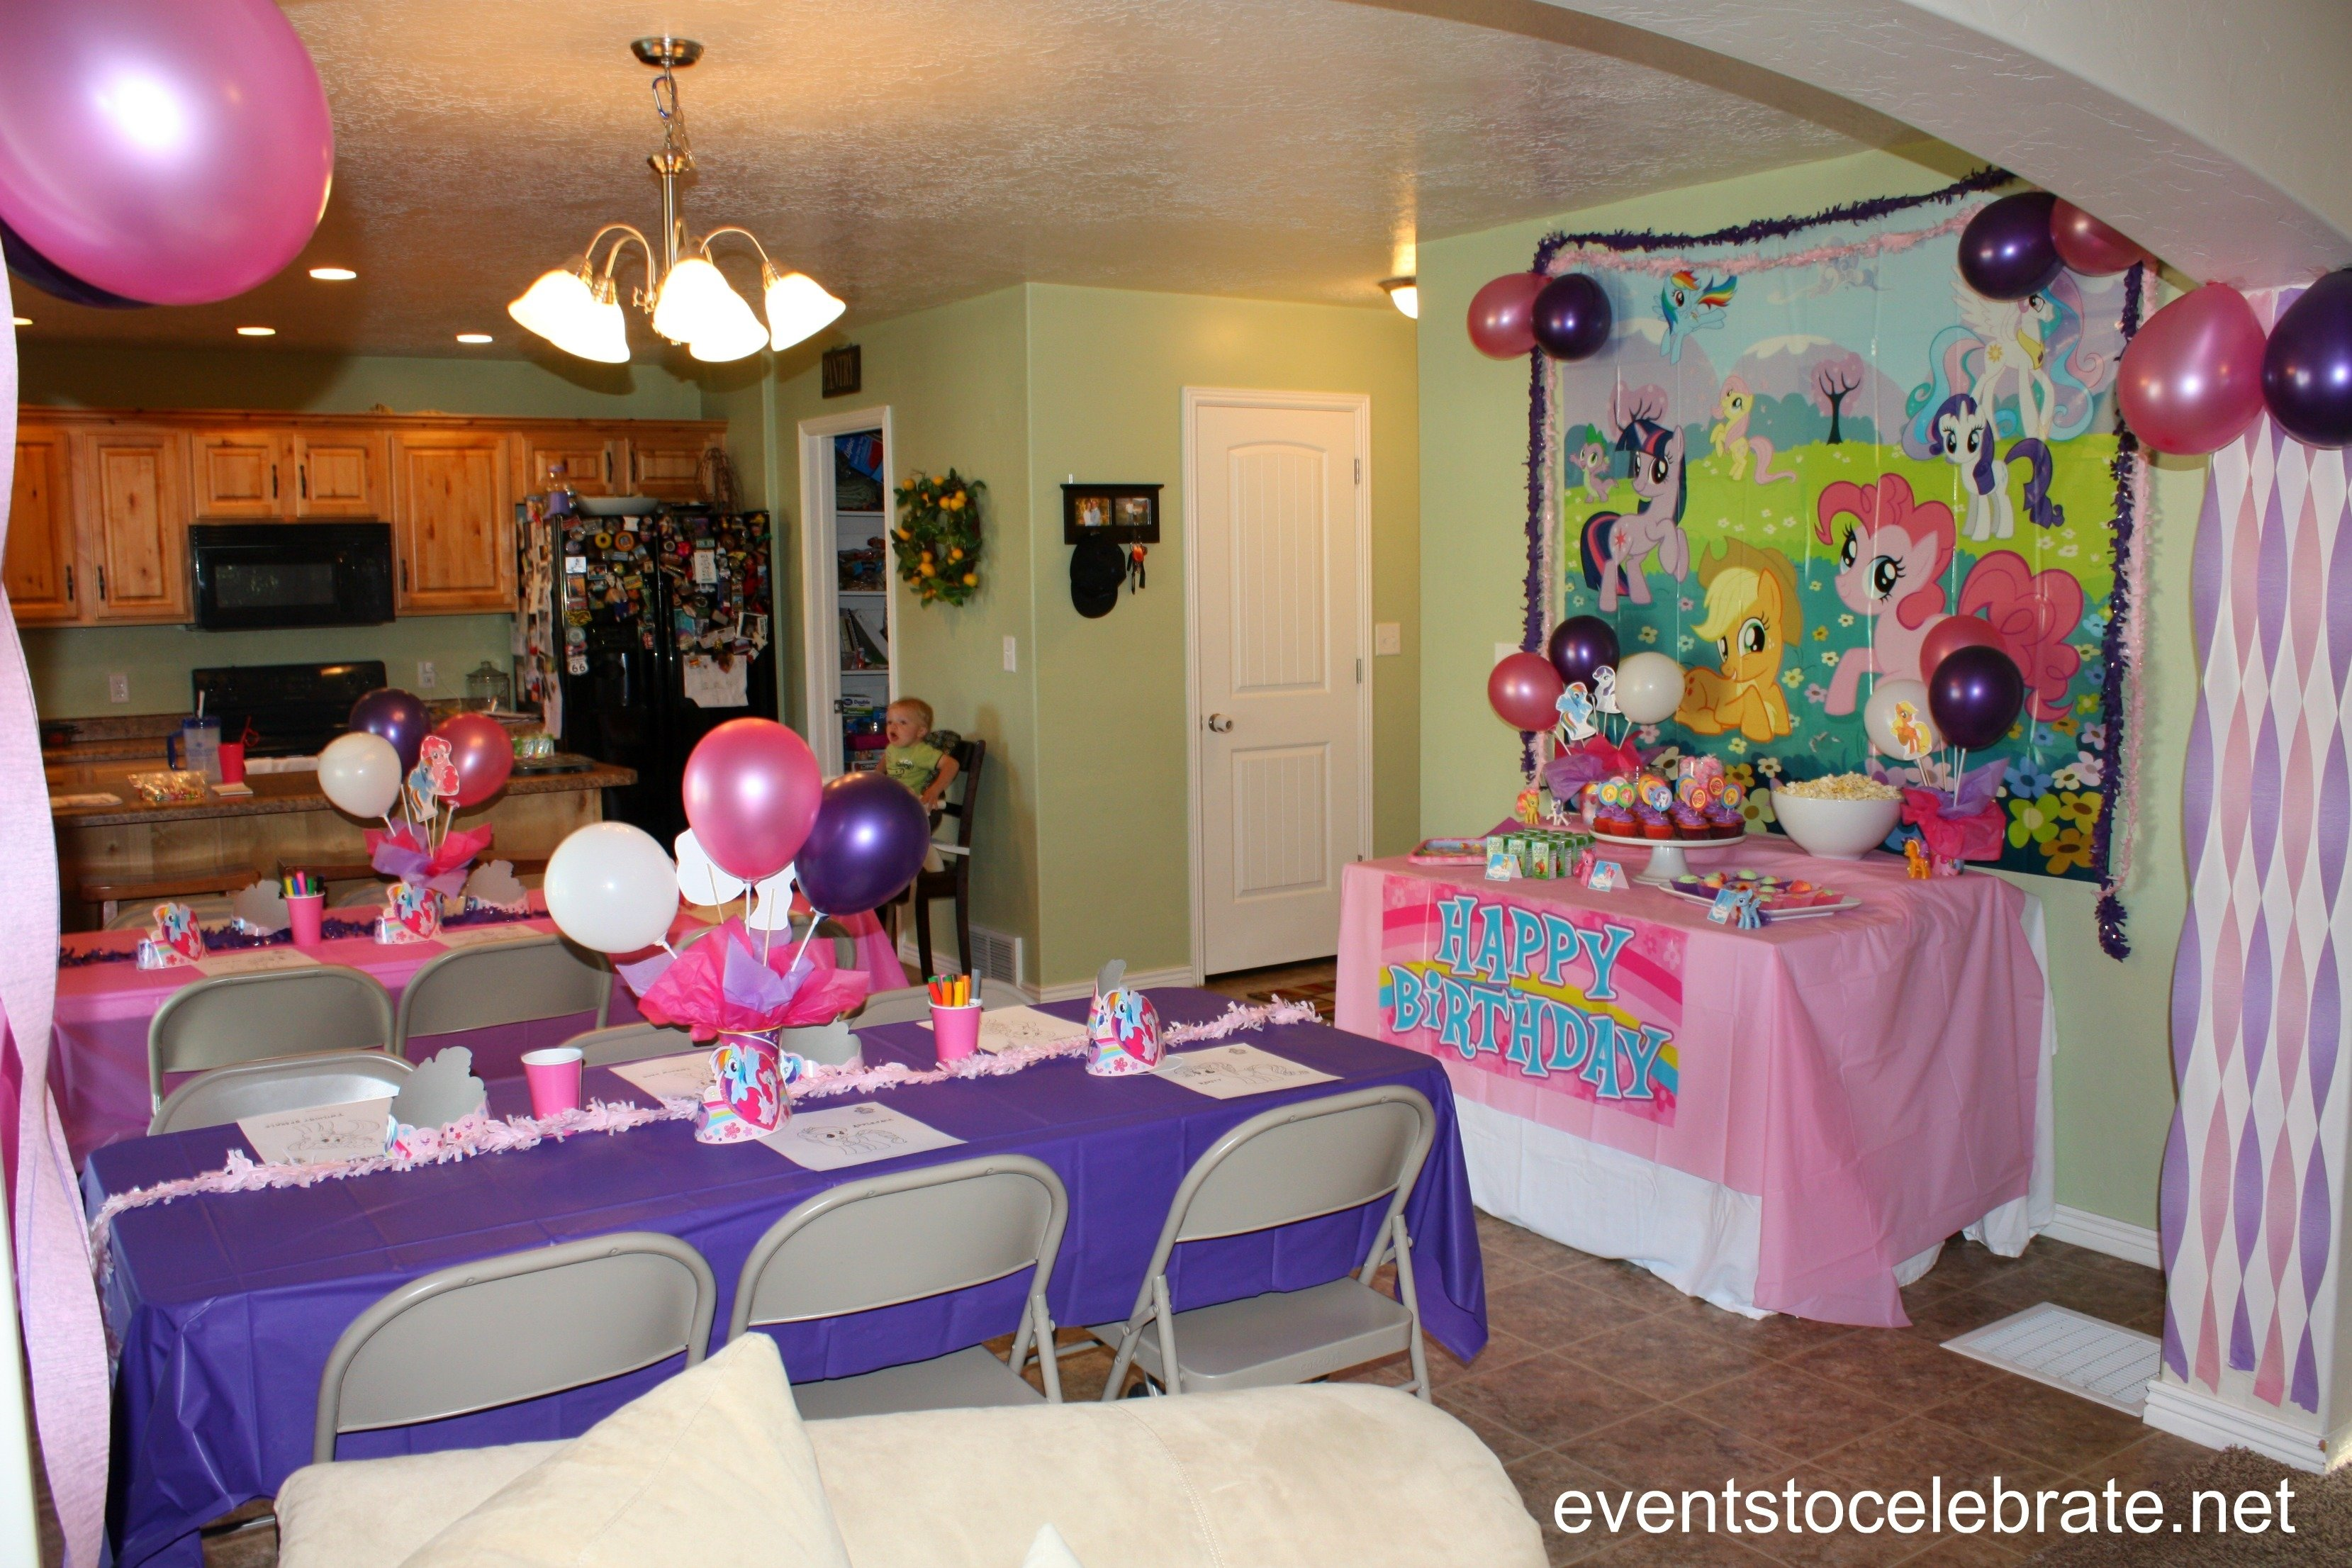 10 Stylish My Little Pony Party Ideas my little pony party ideas events to celebrate 1 2020